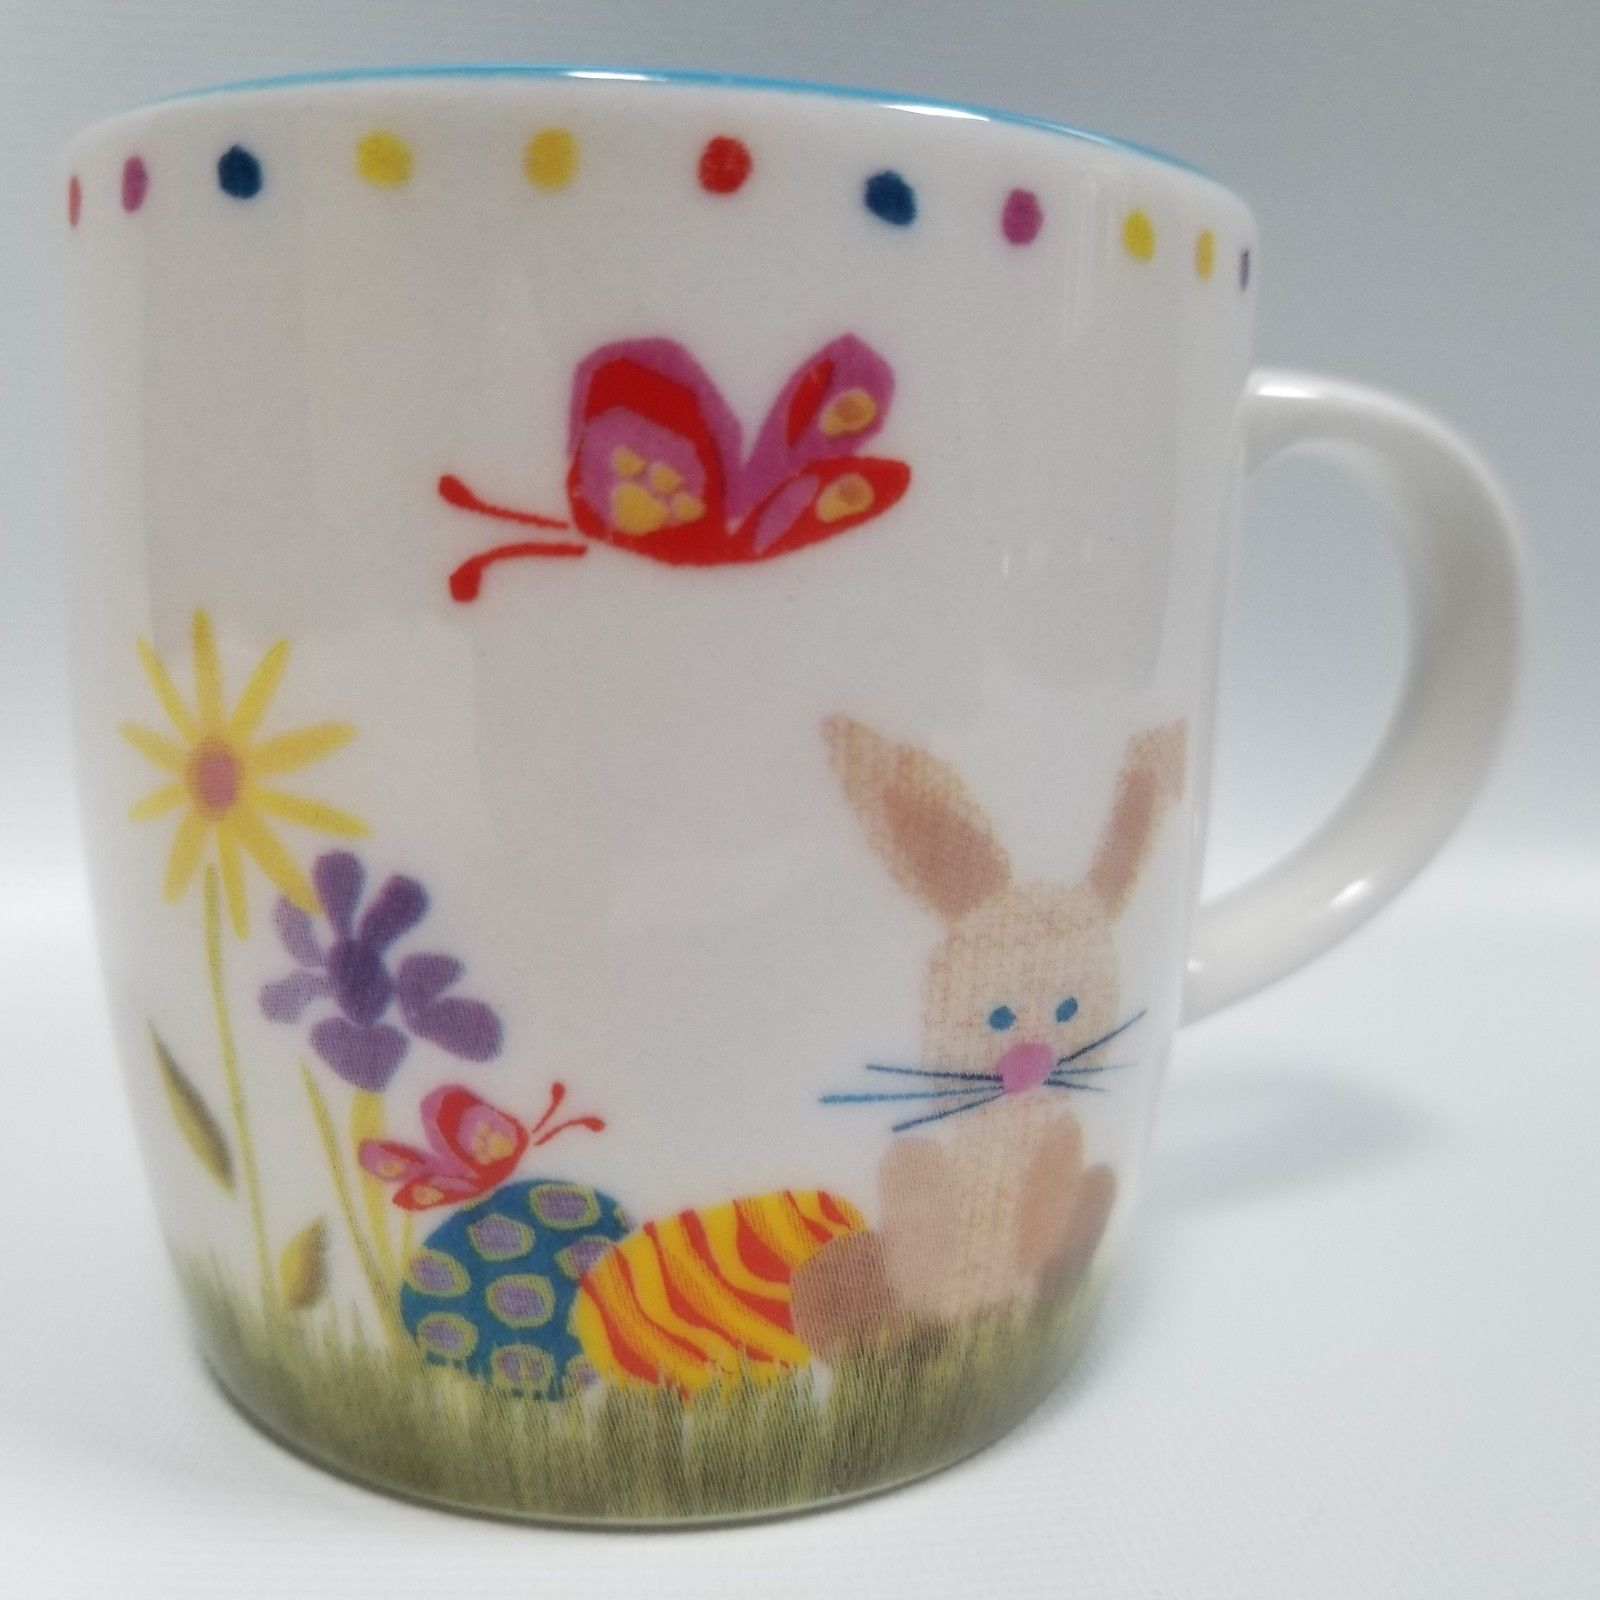 2007 Easter Eggs and Bunny& Butterflies & Colorful Flowers Starbucks Coffee Mug